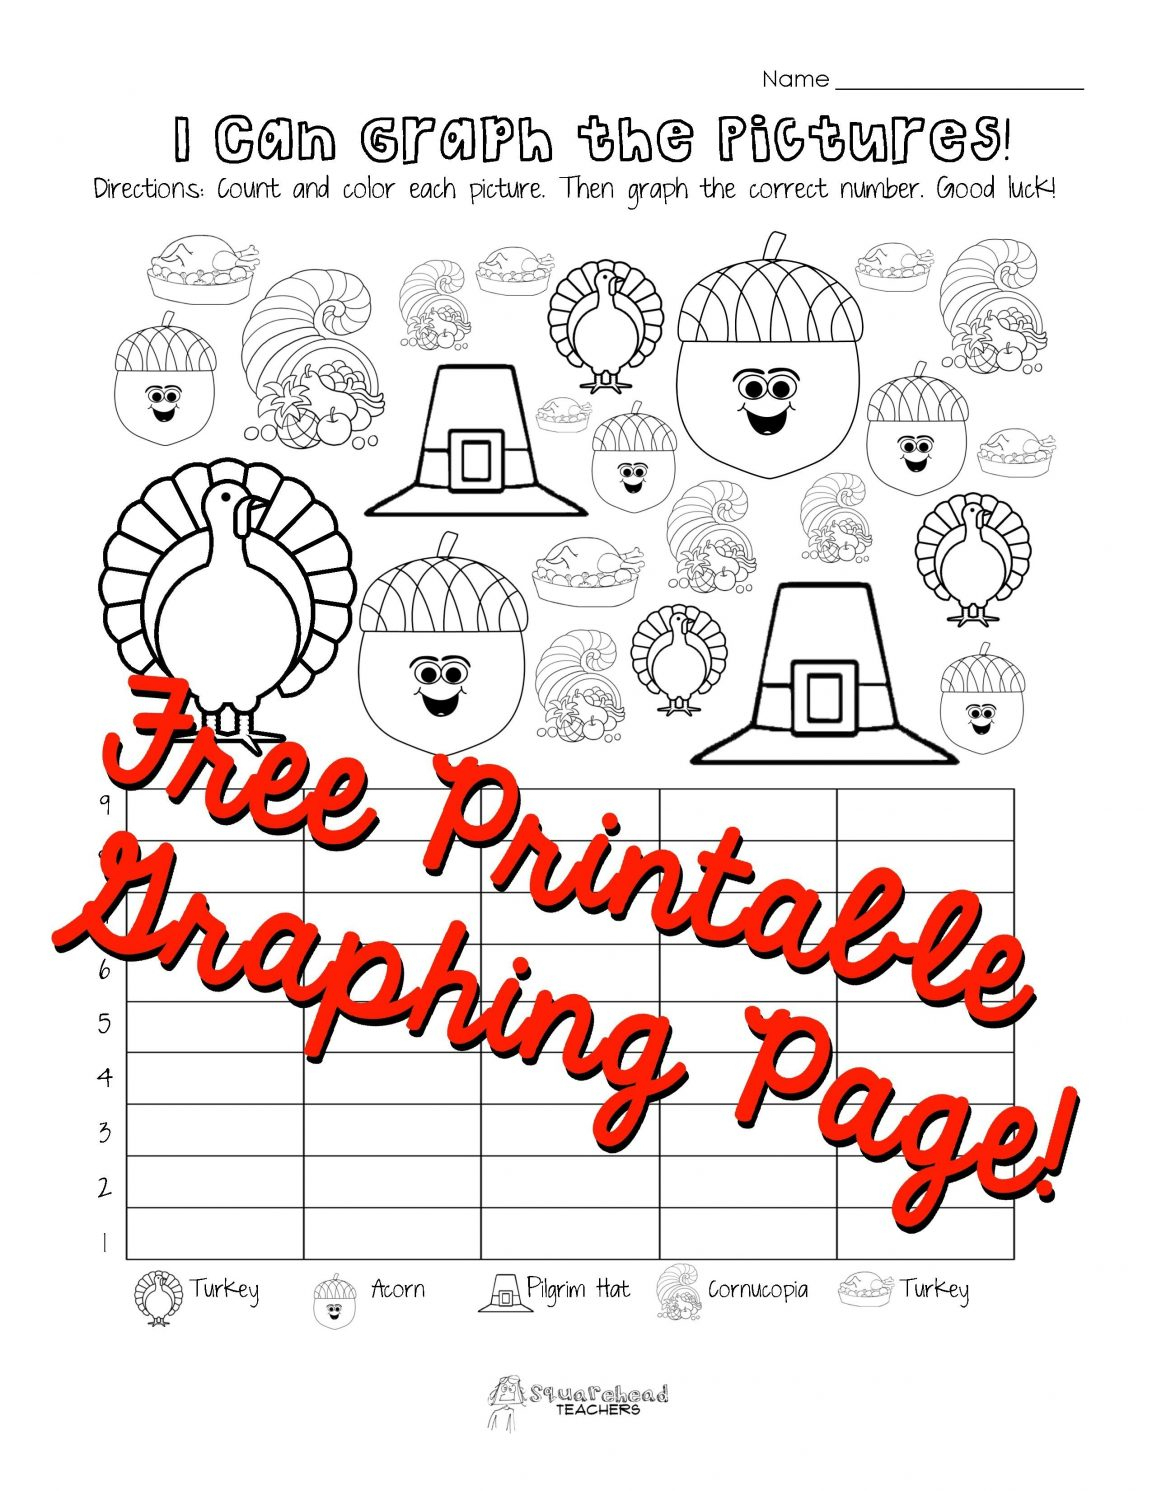 High School Printable Worksheets Math Worksheets Free Printable - Free Printable Thanksgiving Worksheets For Middle School